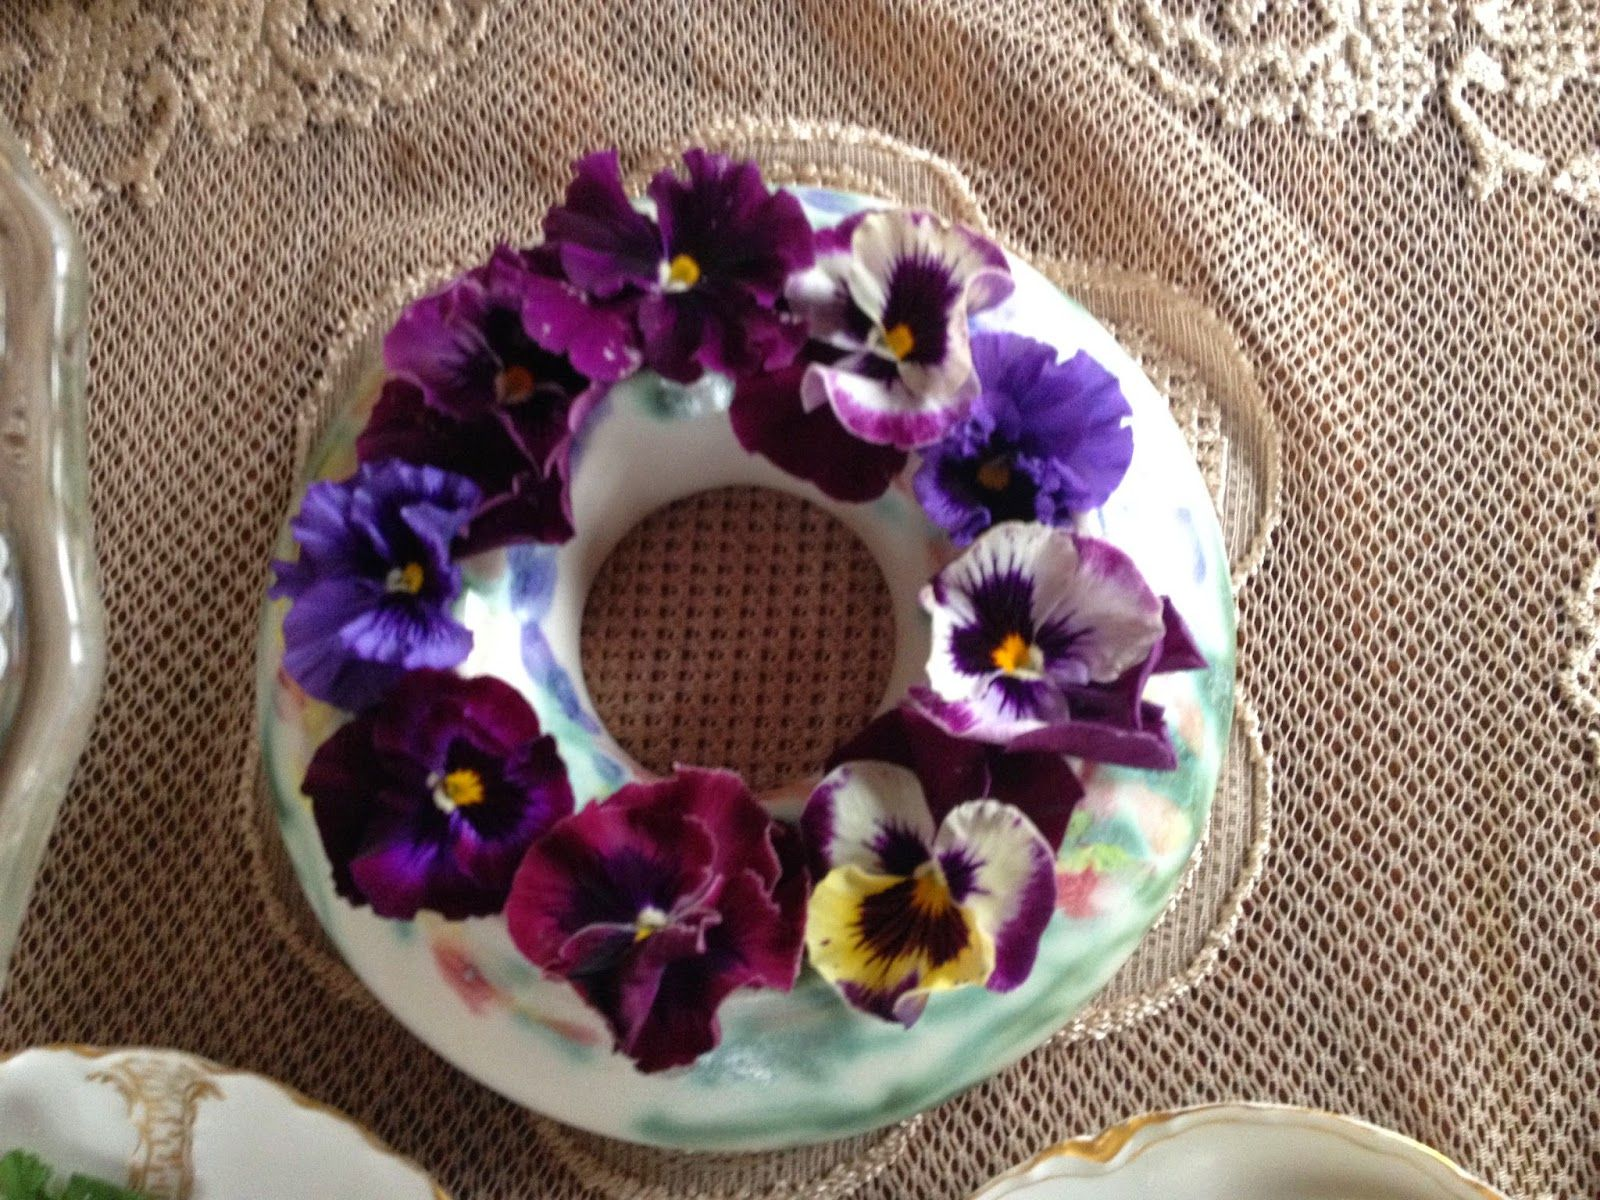 Pansies In A Pansy Ring Decorating A Dinner Table Pansies Traditional Vases Fragrant Flowers